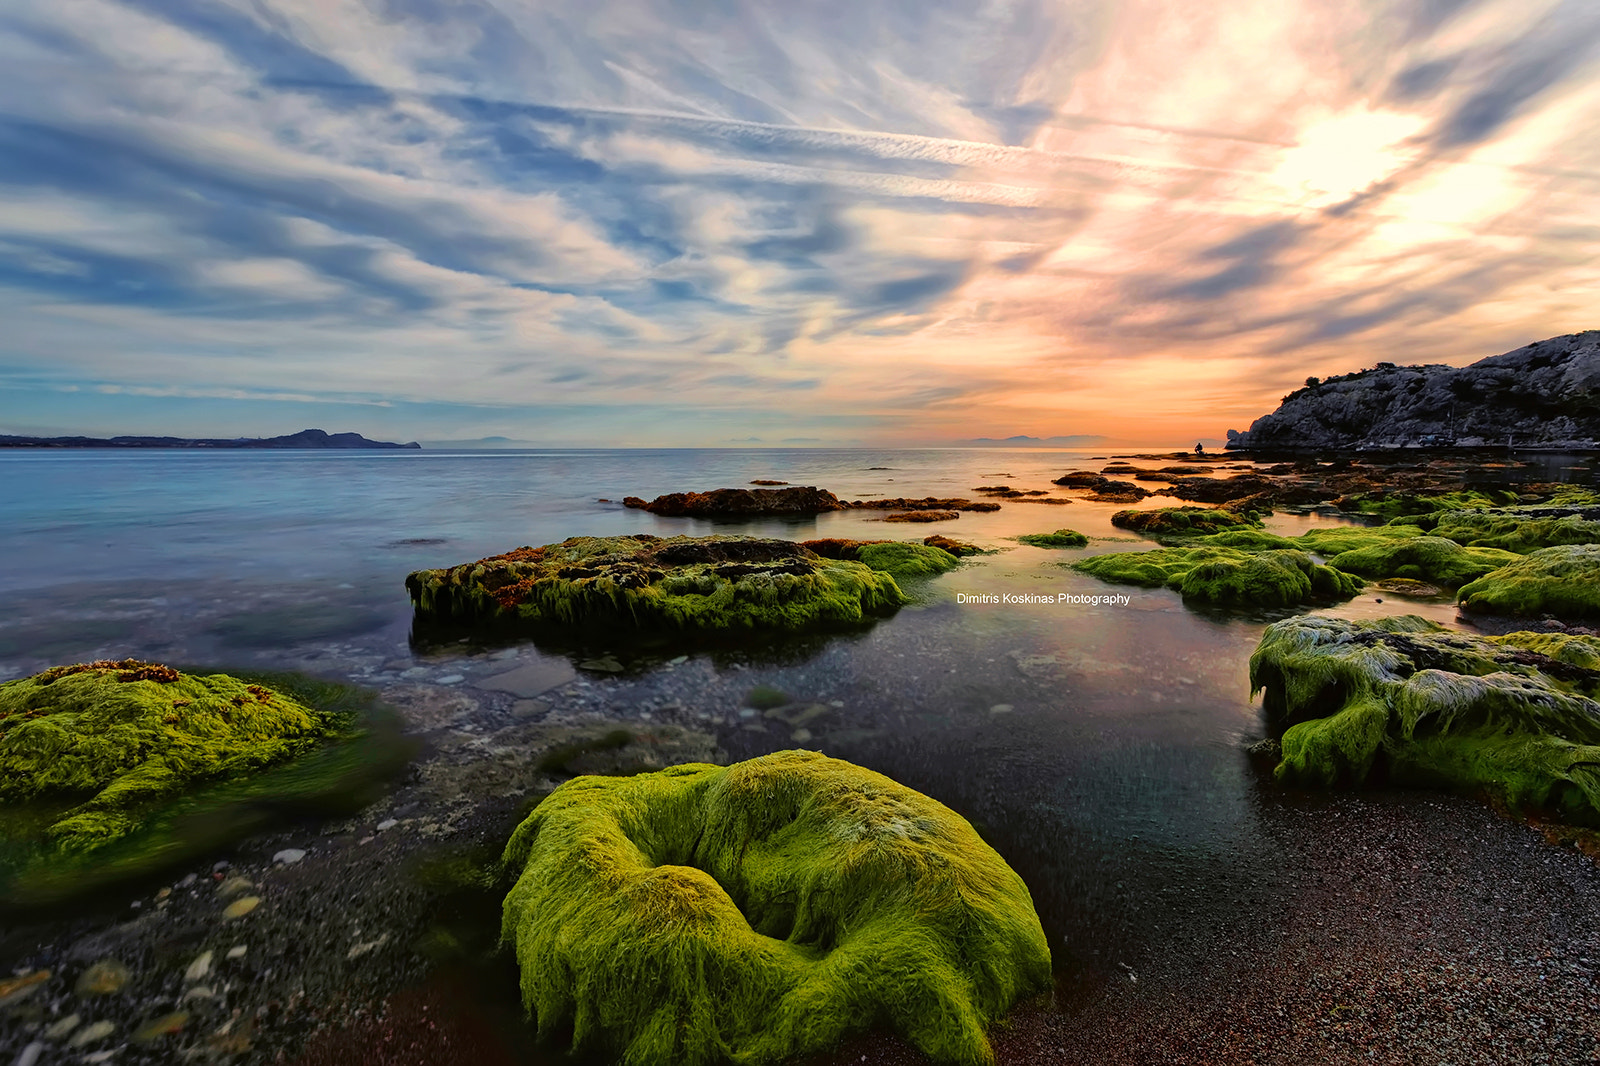 Photograph Sunrise at Rhodes by Dimitris Koskinas on 500px